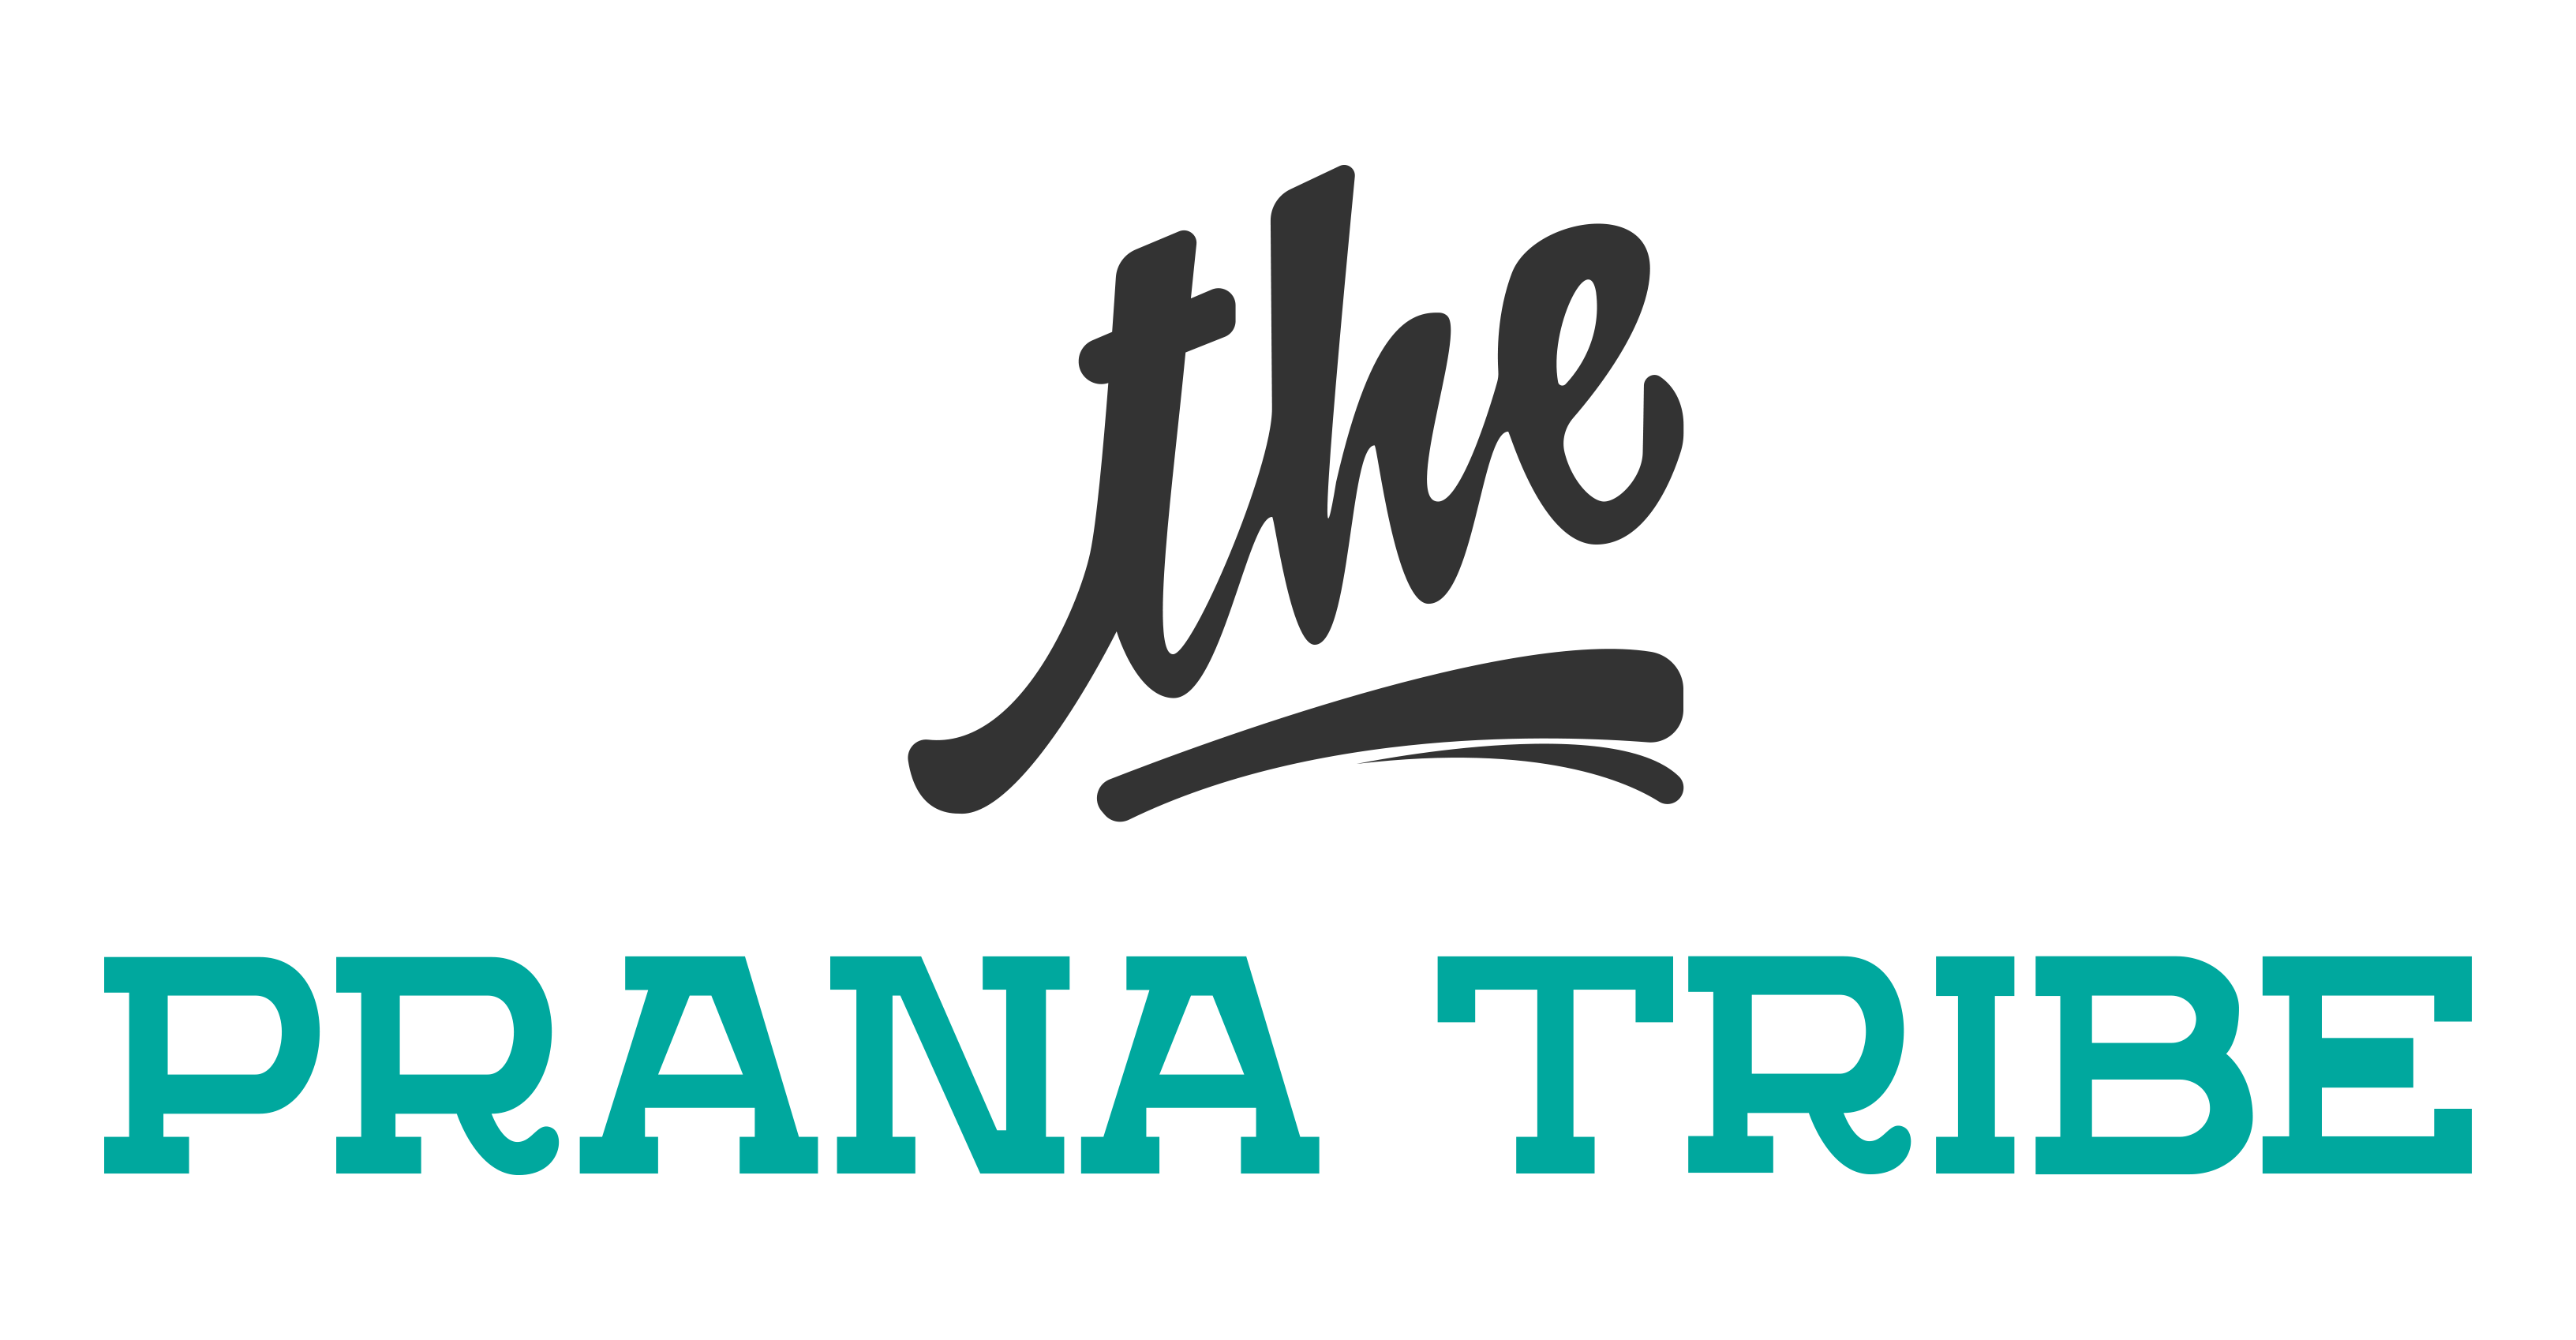 The Prana Tribe